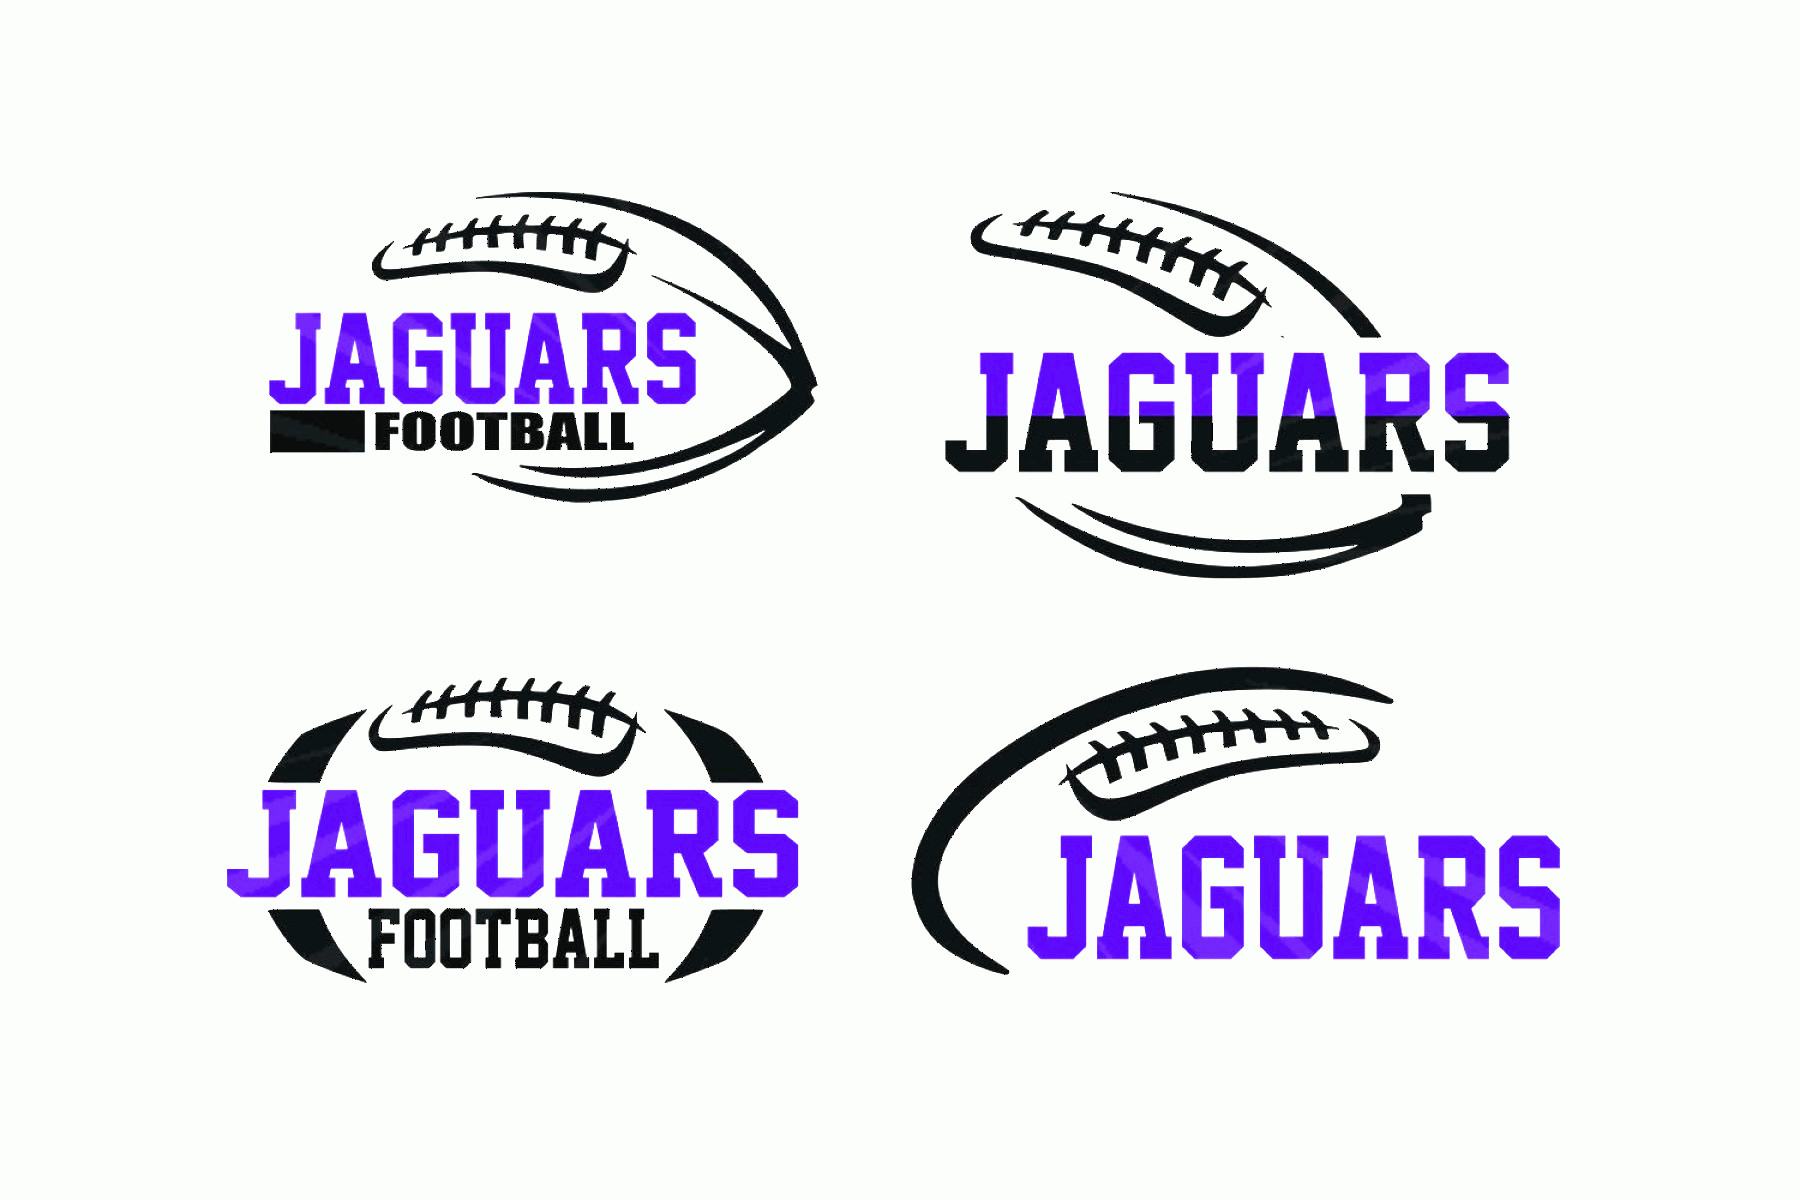 Football Laces Vector Silhouette: Jaguars Football Svg Bundle Pack Laces